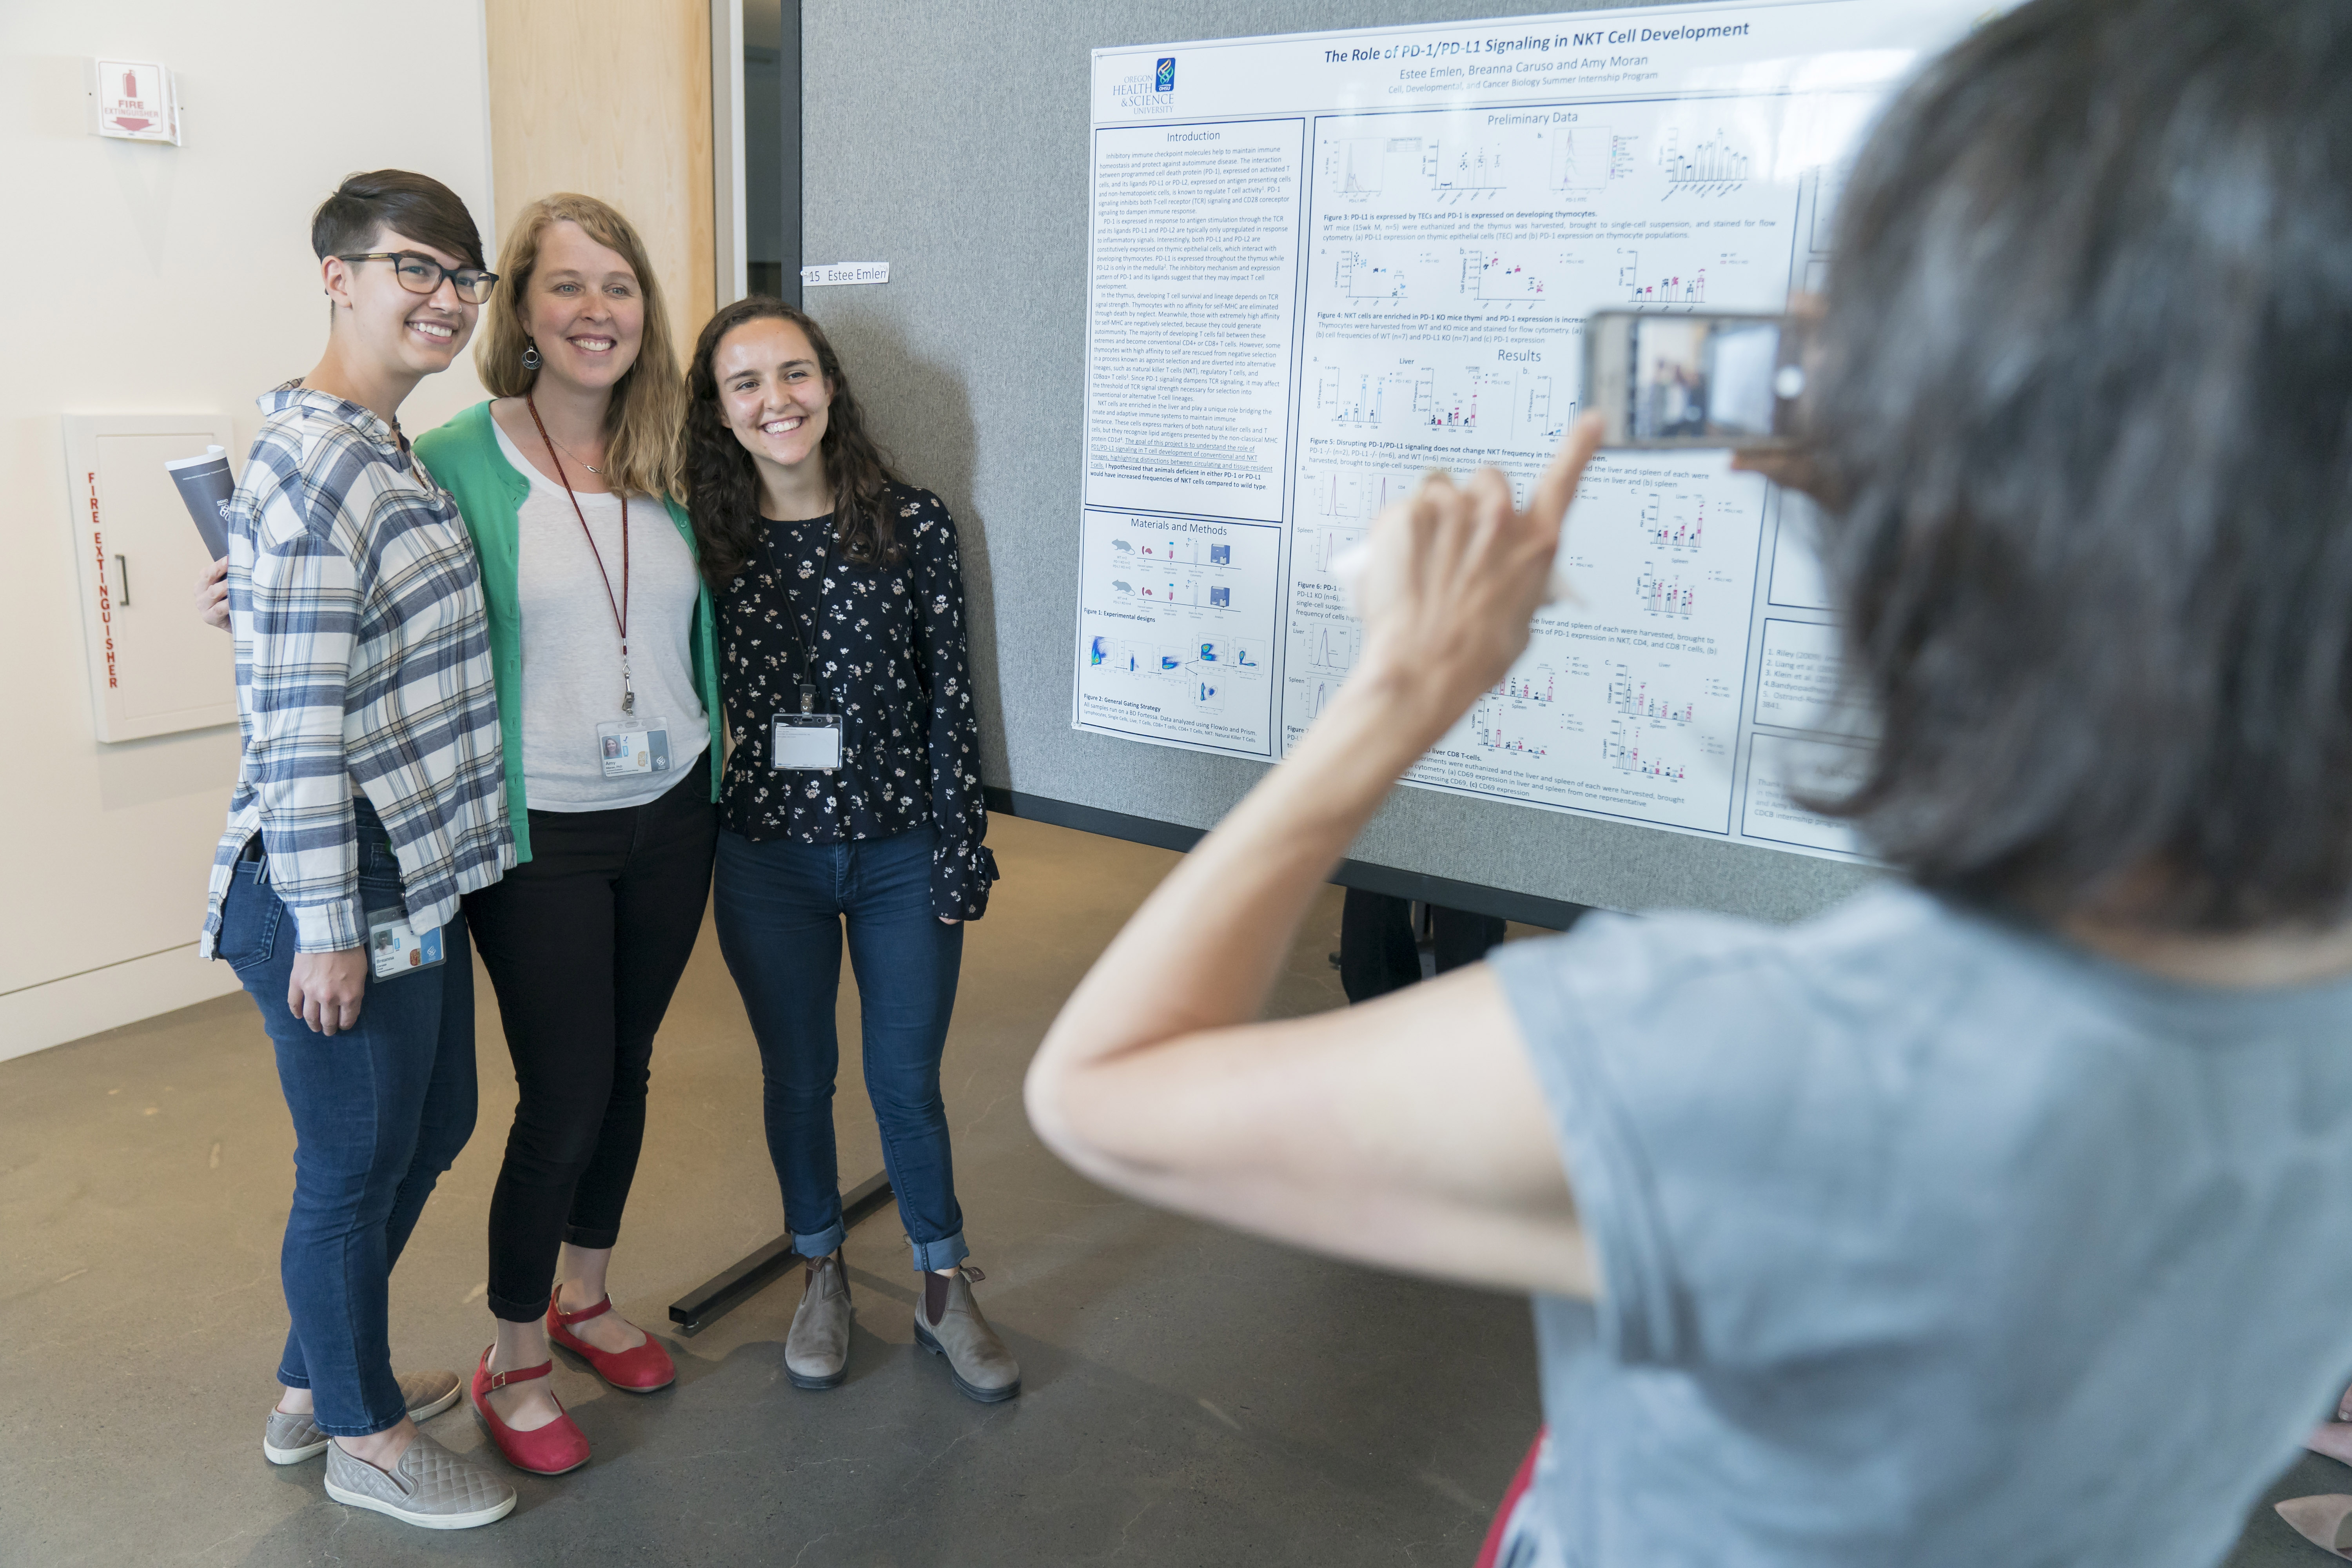 2019 CDCB poster symposium with Assistant Professor Amy Moran, Graduate student Breanna Caruso, and intern Estee Emlen